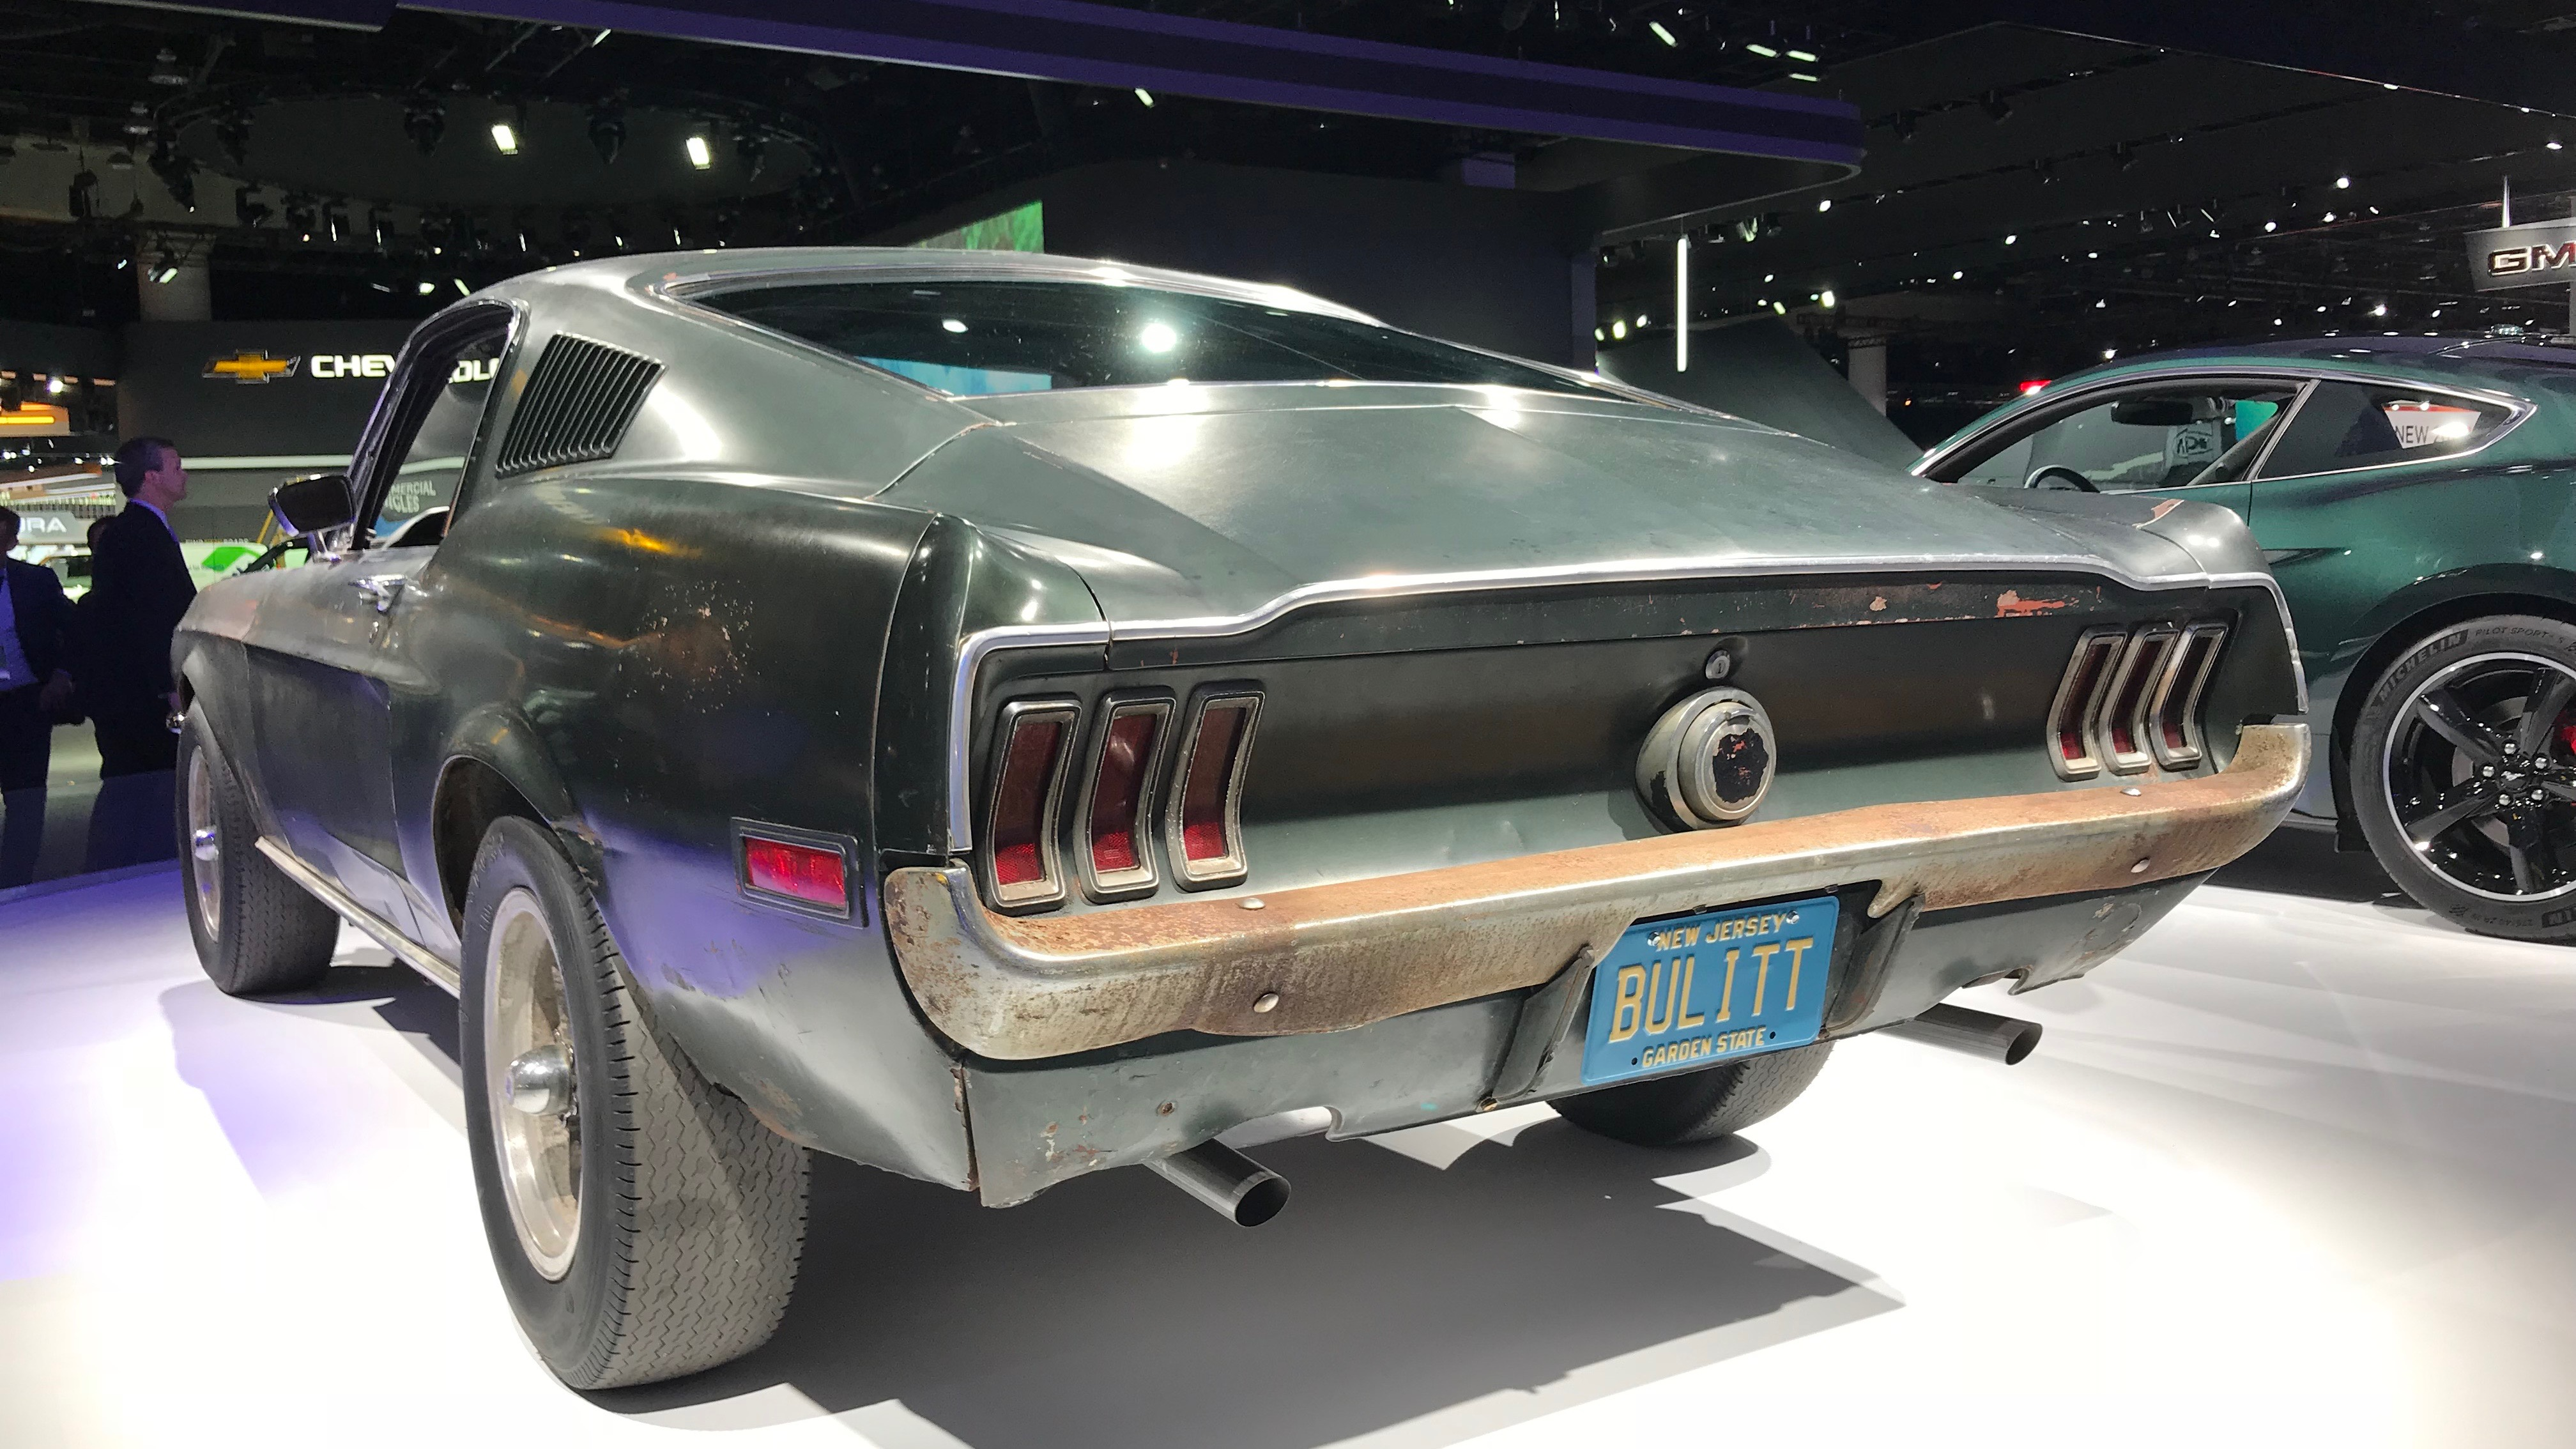 The exciting Ford Mustang Bullitt 2019 debuts at the Detroit Auto